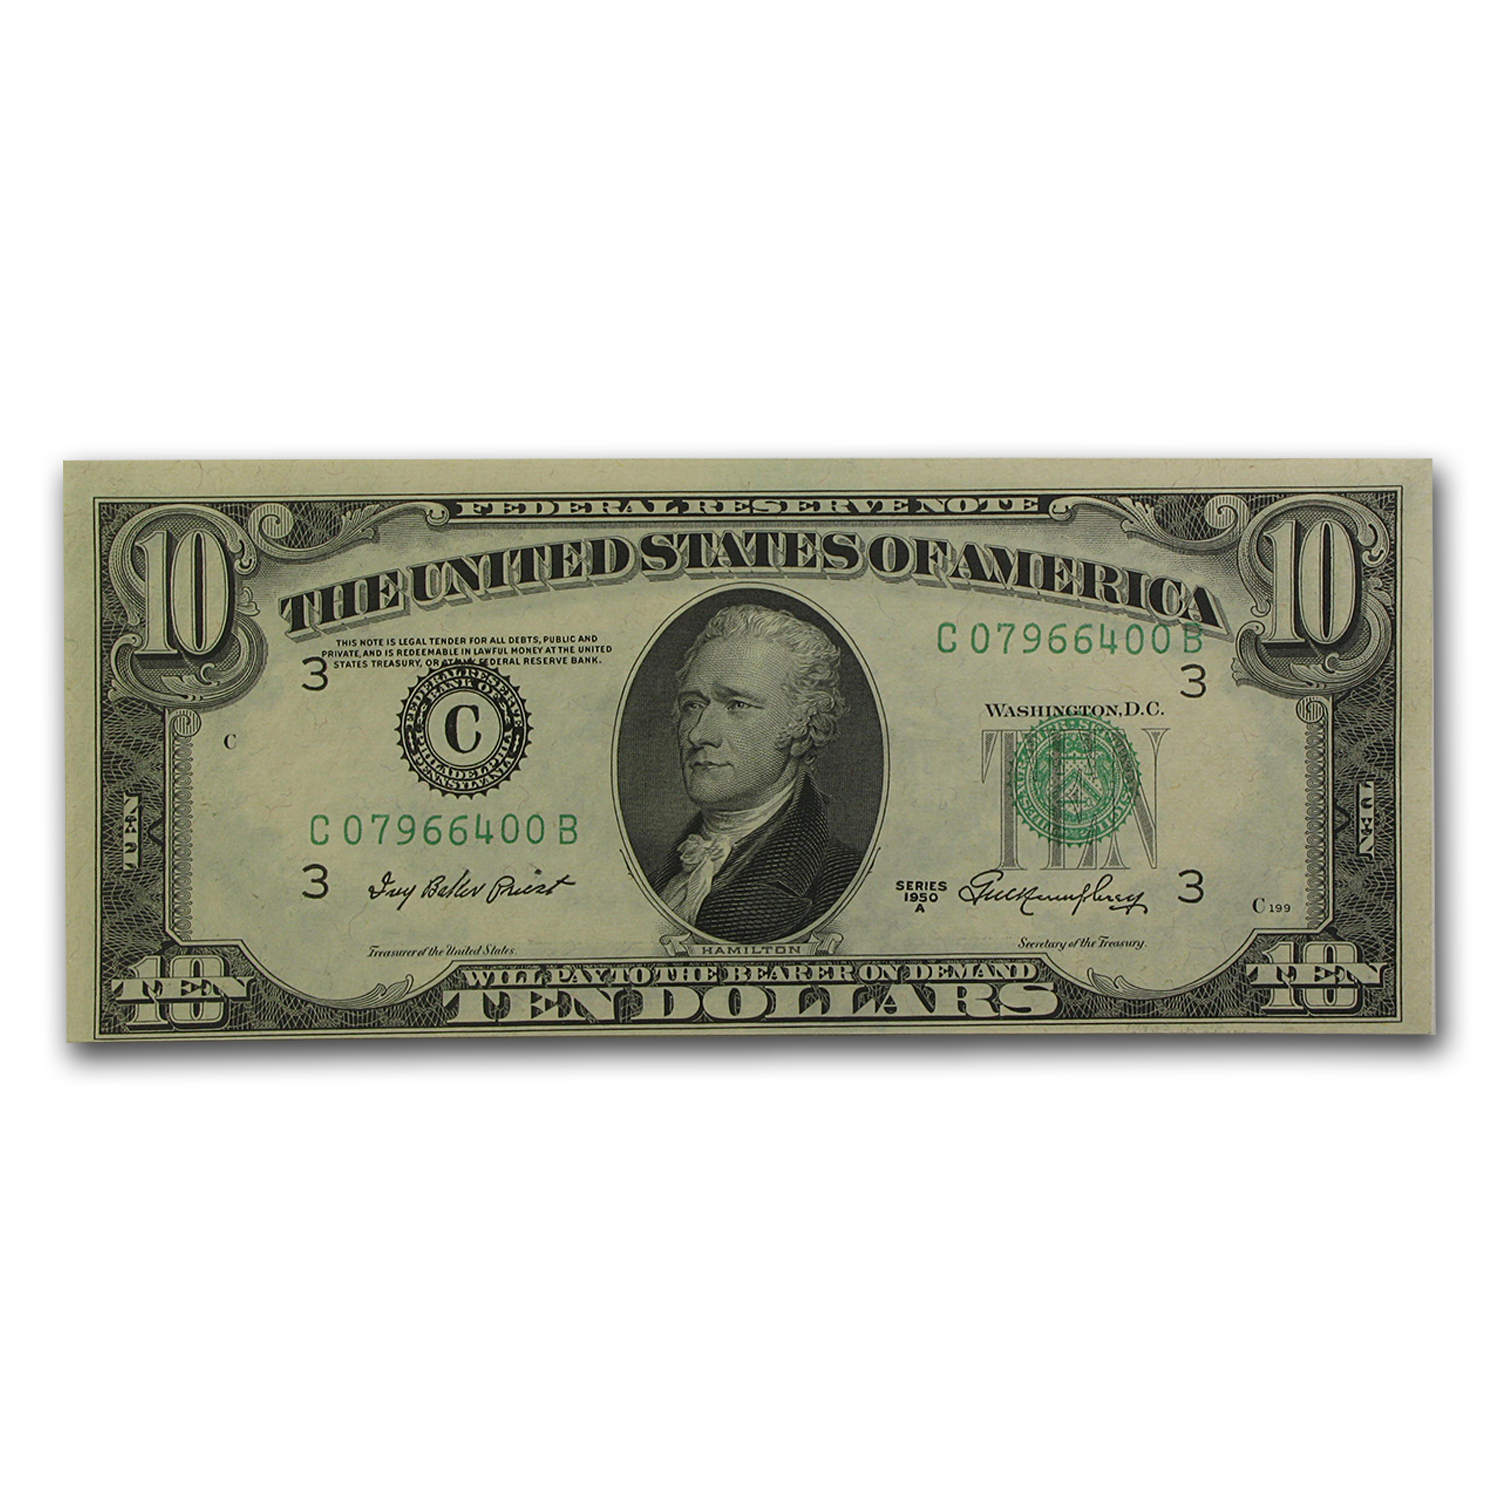 1950-A (G-Chicago) $10 FRN AU (Ink Smear Error)